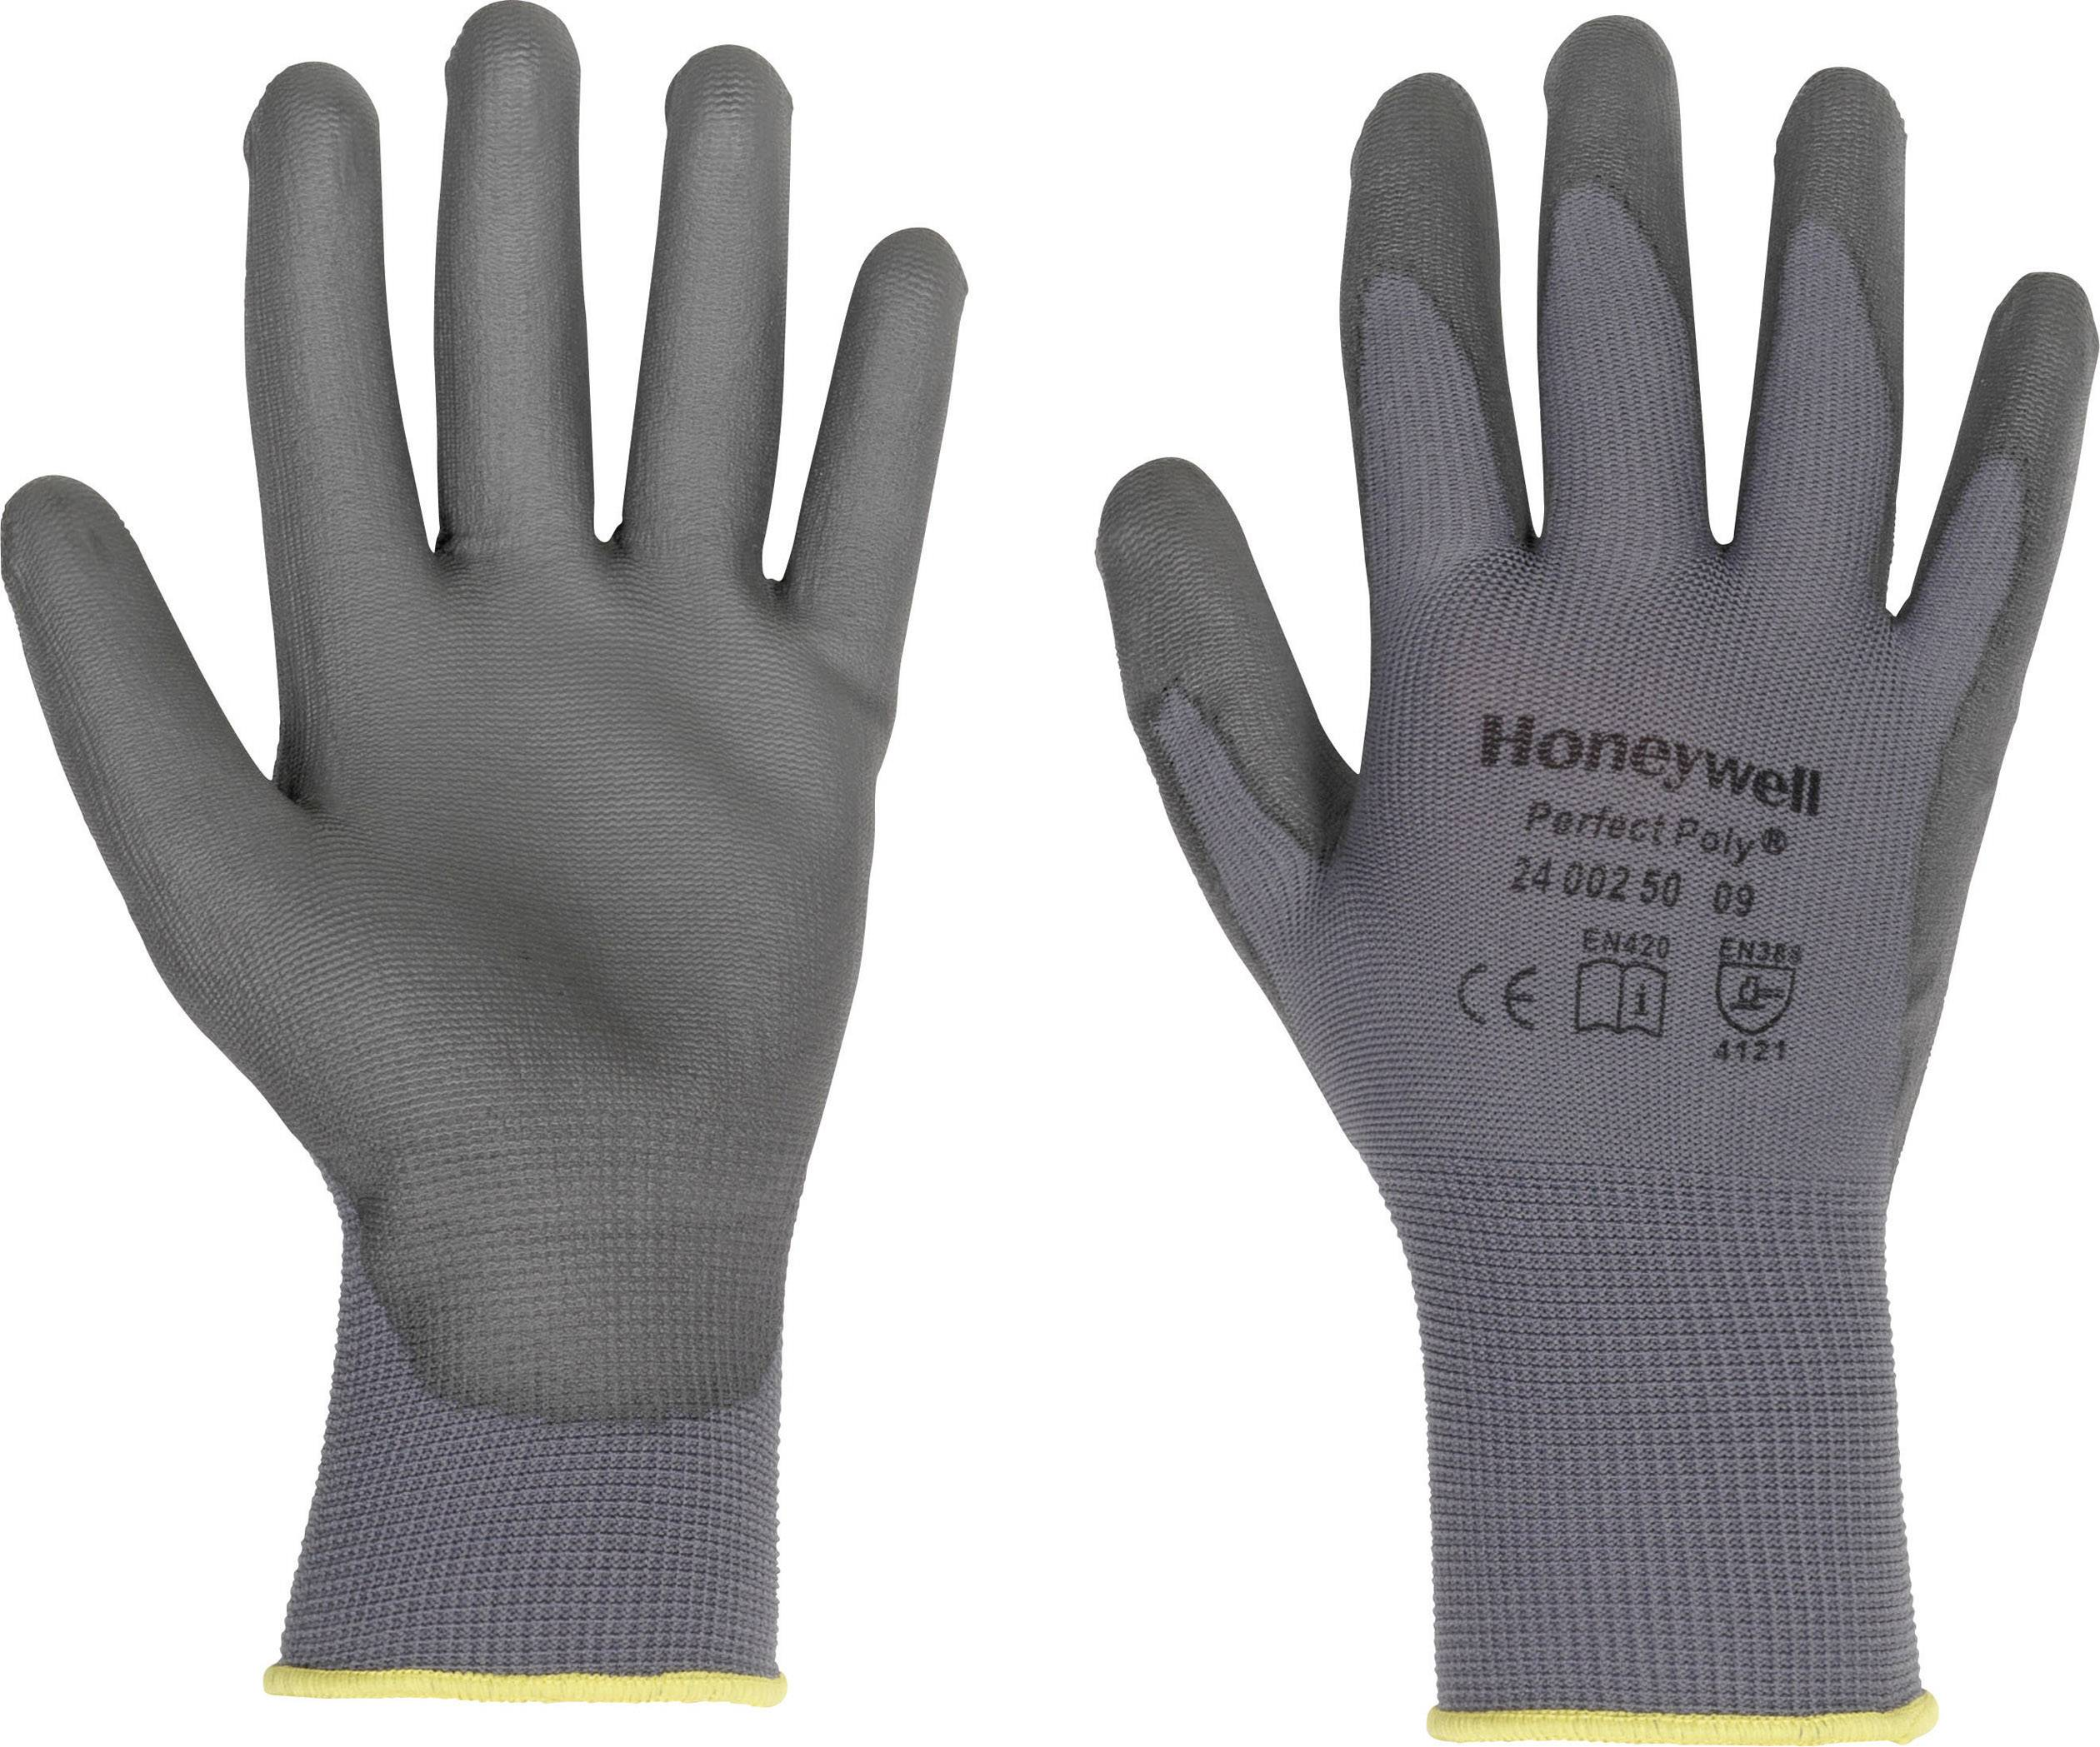 Pracovné rukavice Perfect Fit GANTS GRIS PERFECTPOLY 2400250, velikost rukavic: 7, S